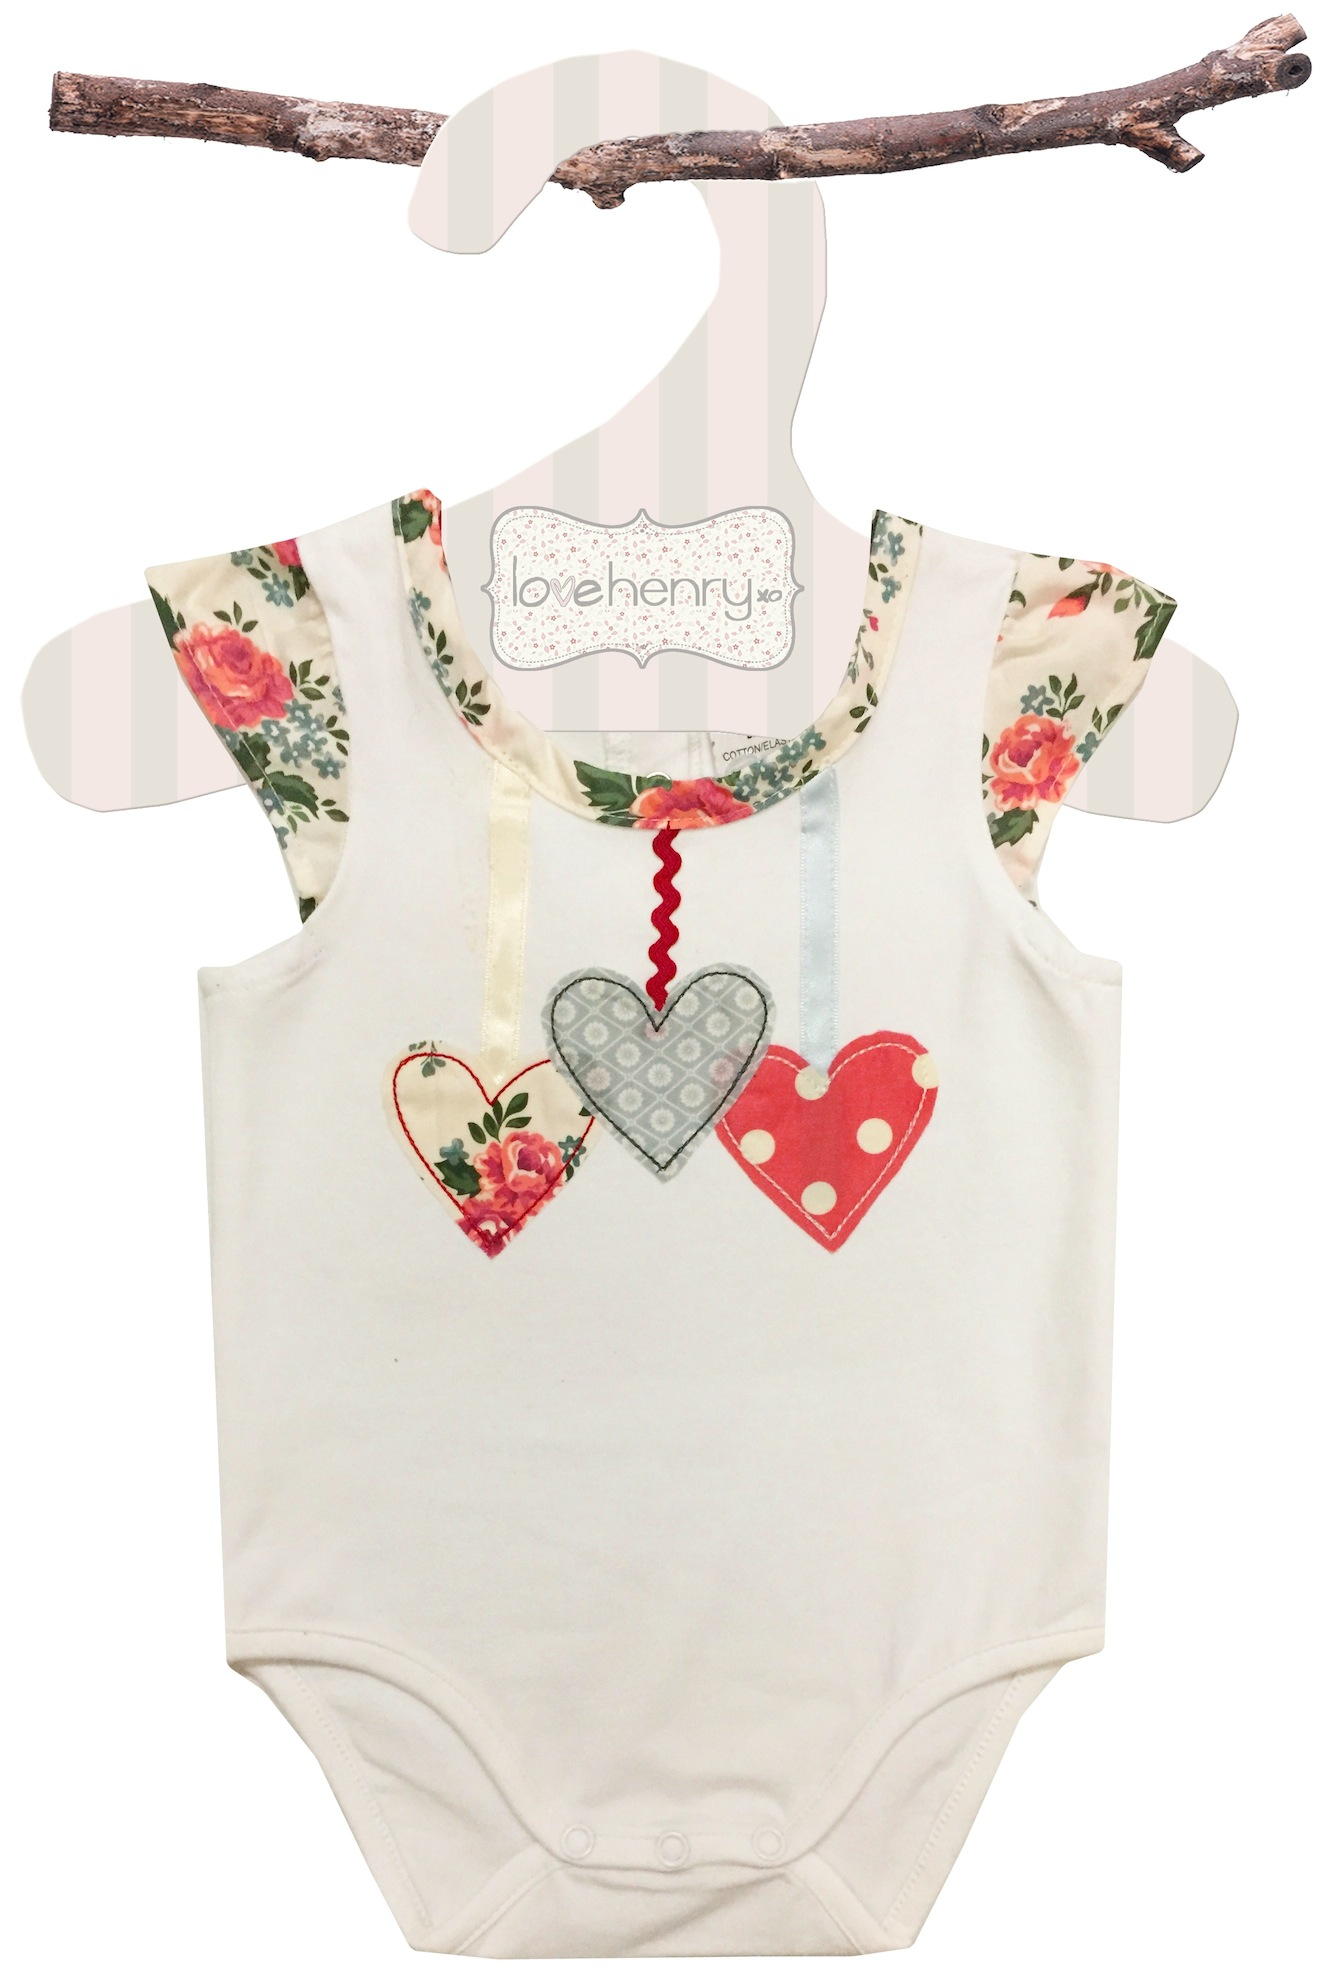 Baby Girls Clothes Online | Love Henry Rose Heart Romper | Not Another Baby Shop